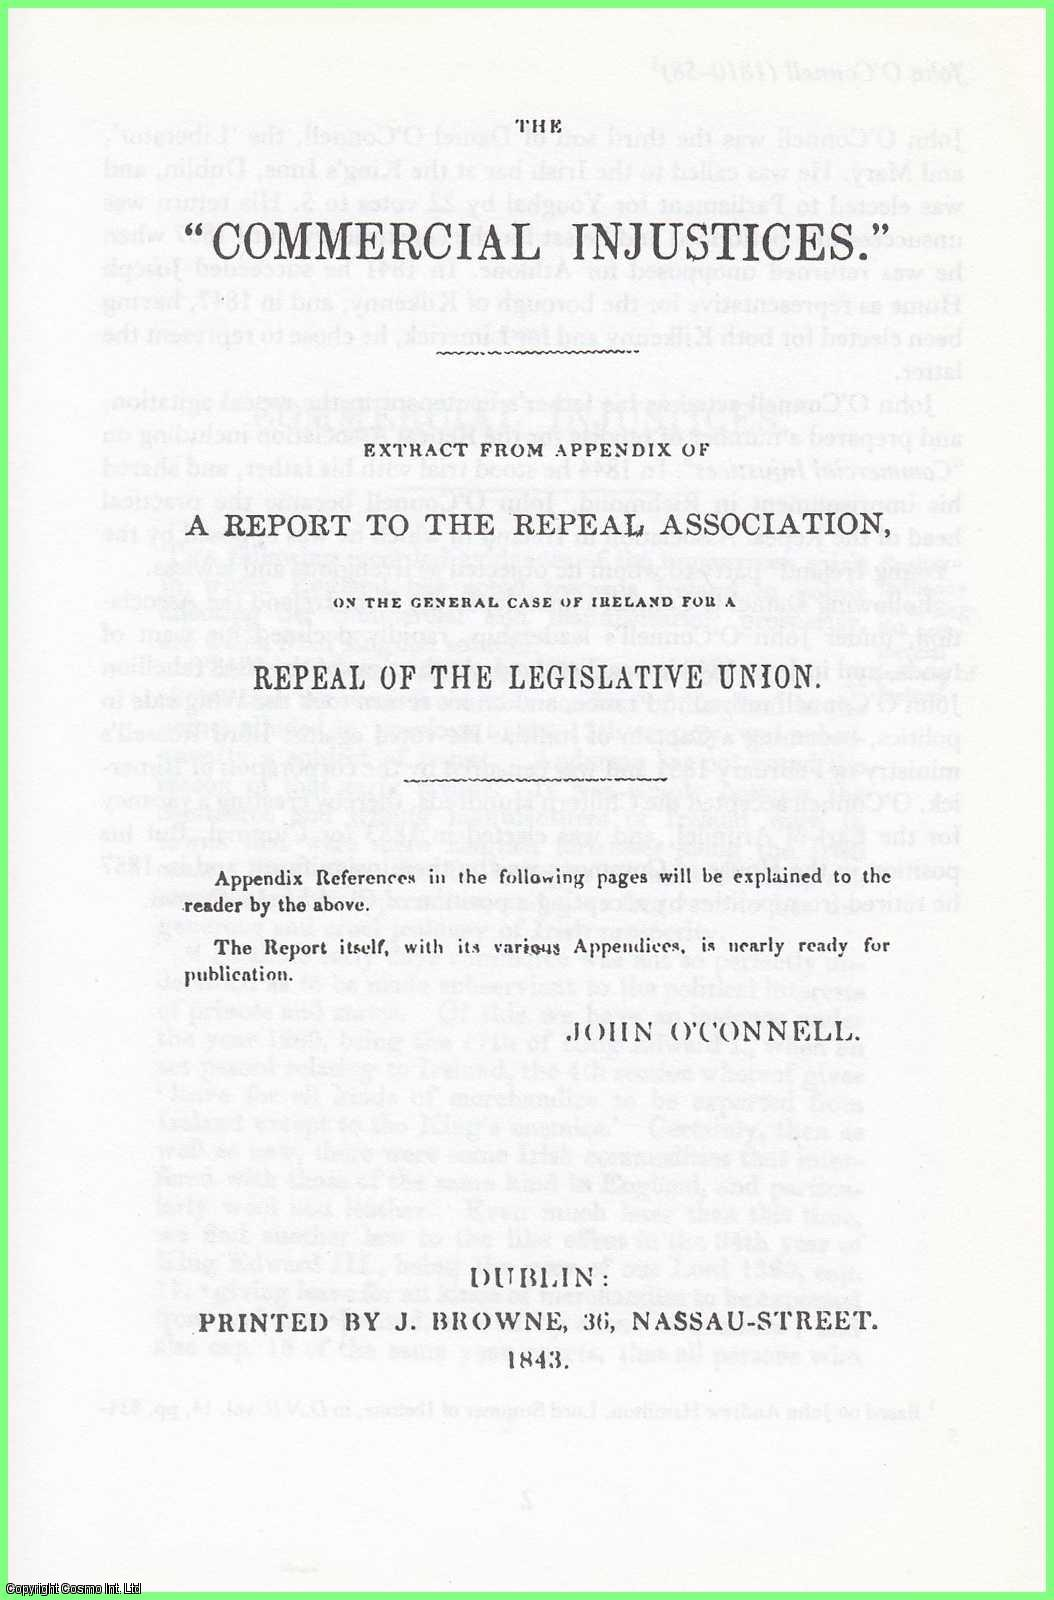 O'CONNELL, JOHN - [Corn Laws] The Commercial Injustices. Extract from Appendix of A Report to the Repeal Association, on the General Case of Ireland for a Repeal of the Legislative Union. 1843. A disbound facsimile article from a larger volume.